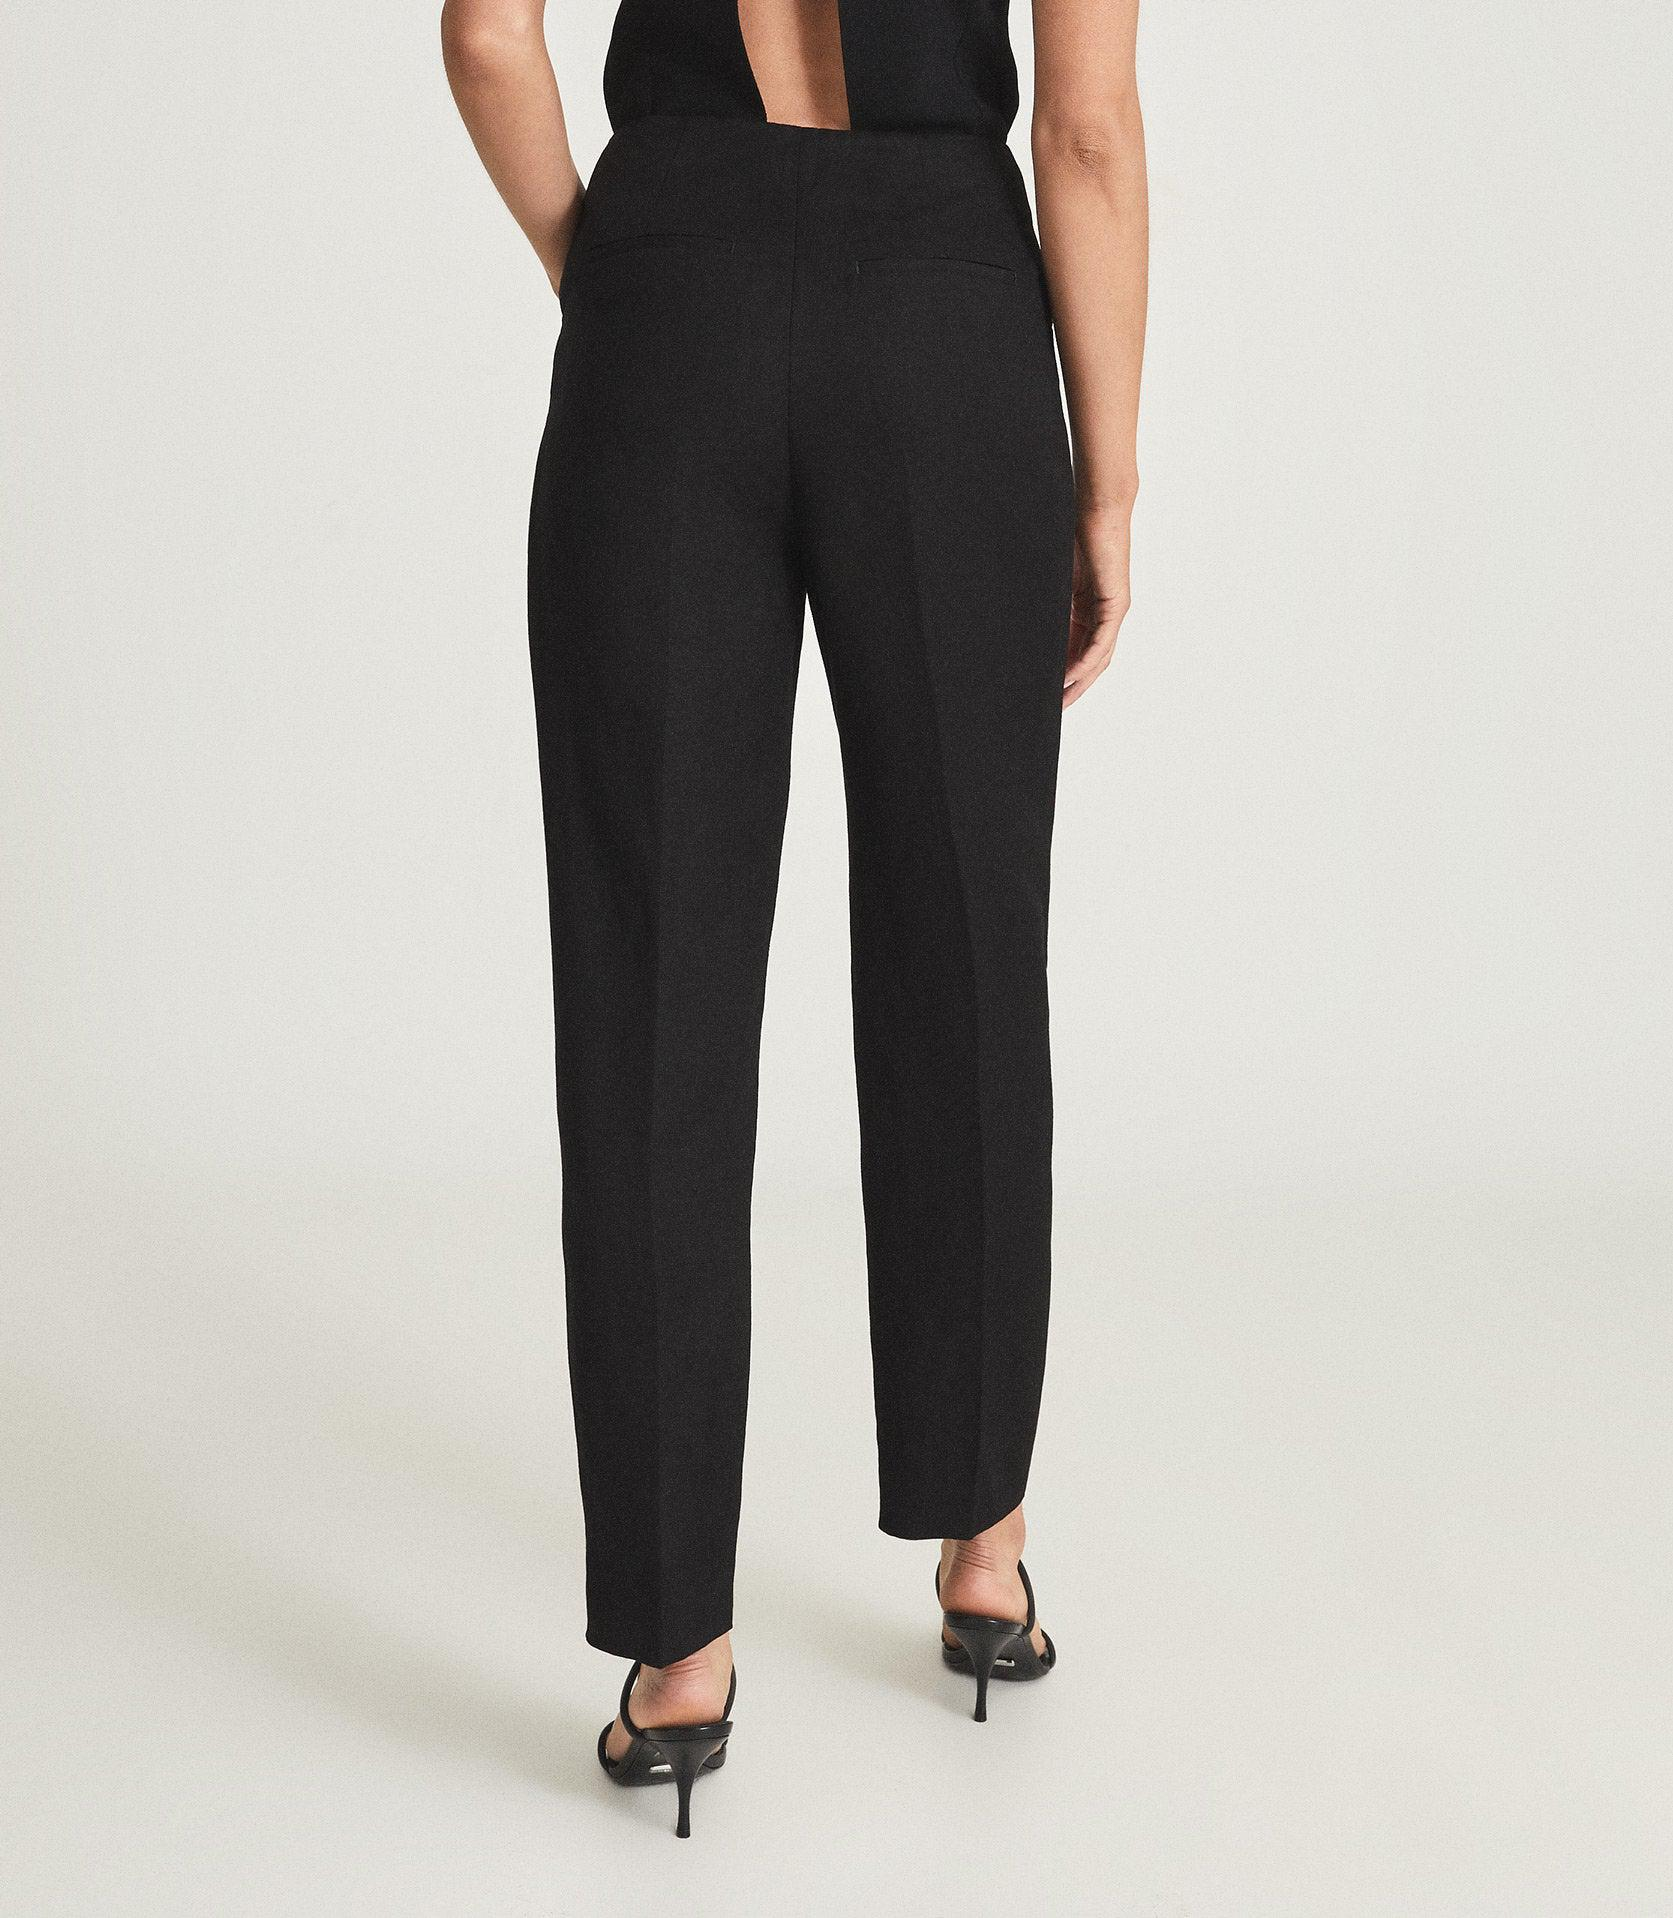 CALLY - LINEN BLEND TROUSERS WITH EXPOSED ZIP 2